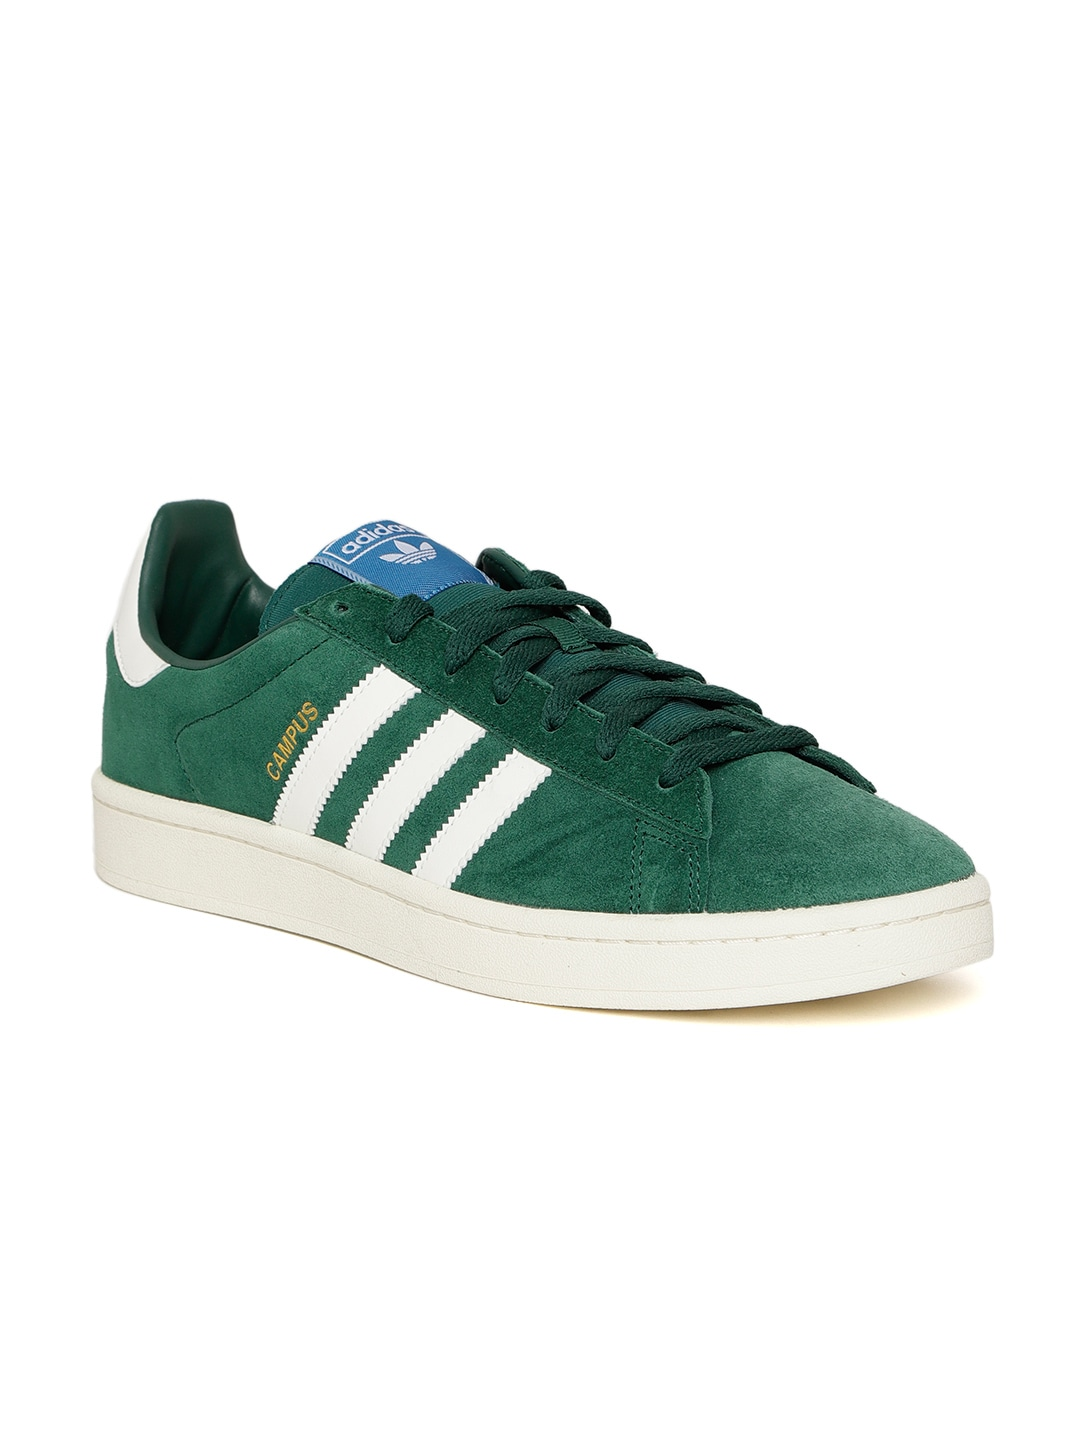 5b3804a17f672f Adidas Olive Green Shoes - Buy Adidas Olive Green Shoes online in India